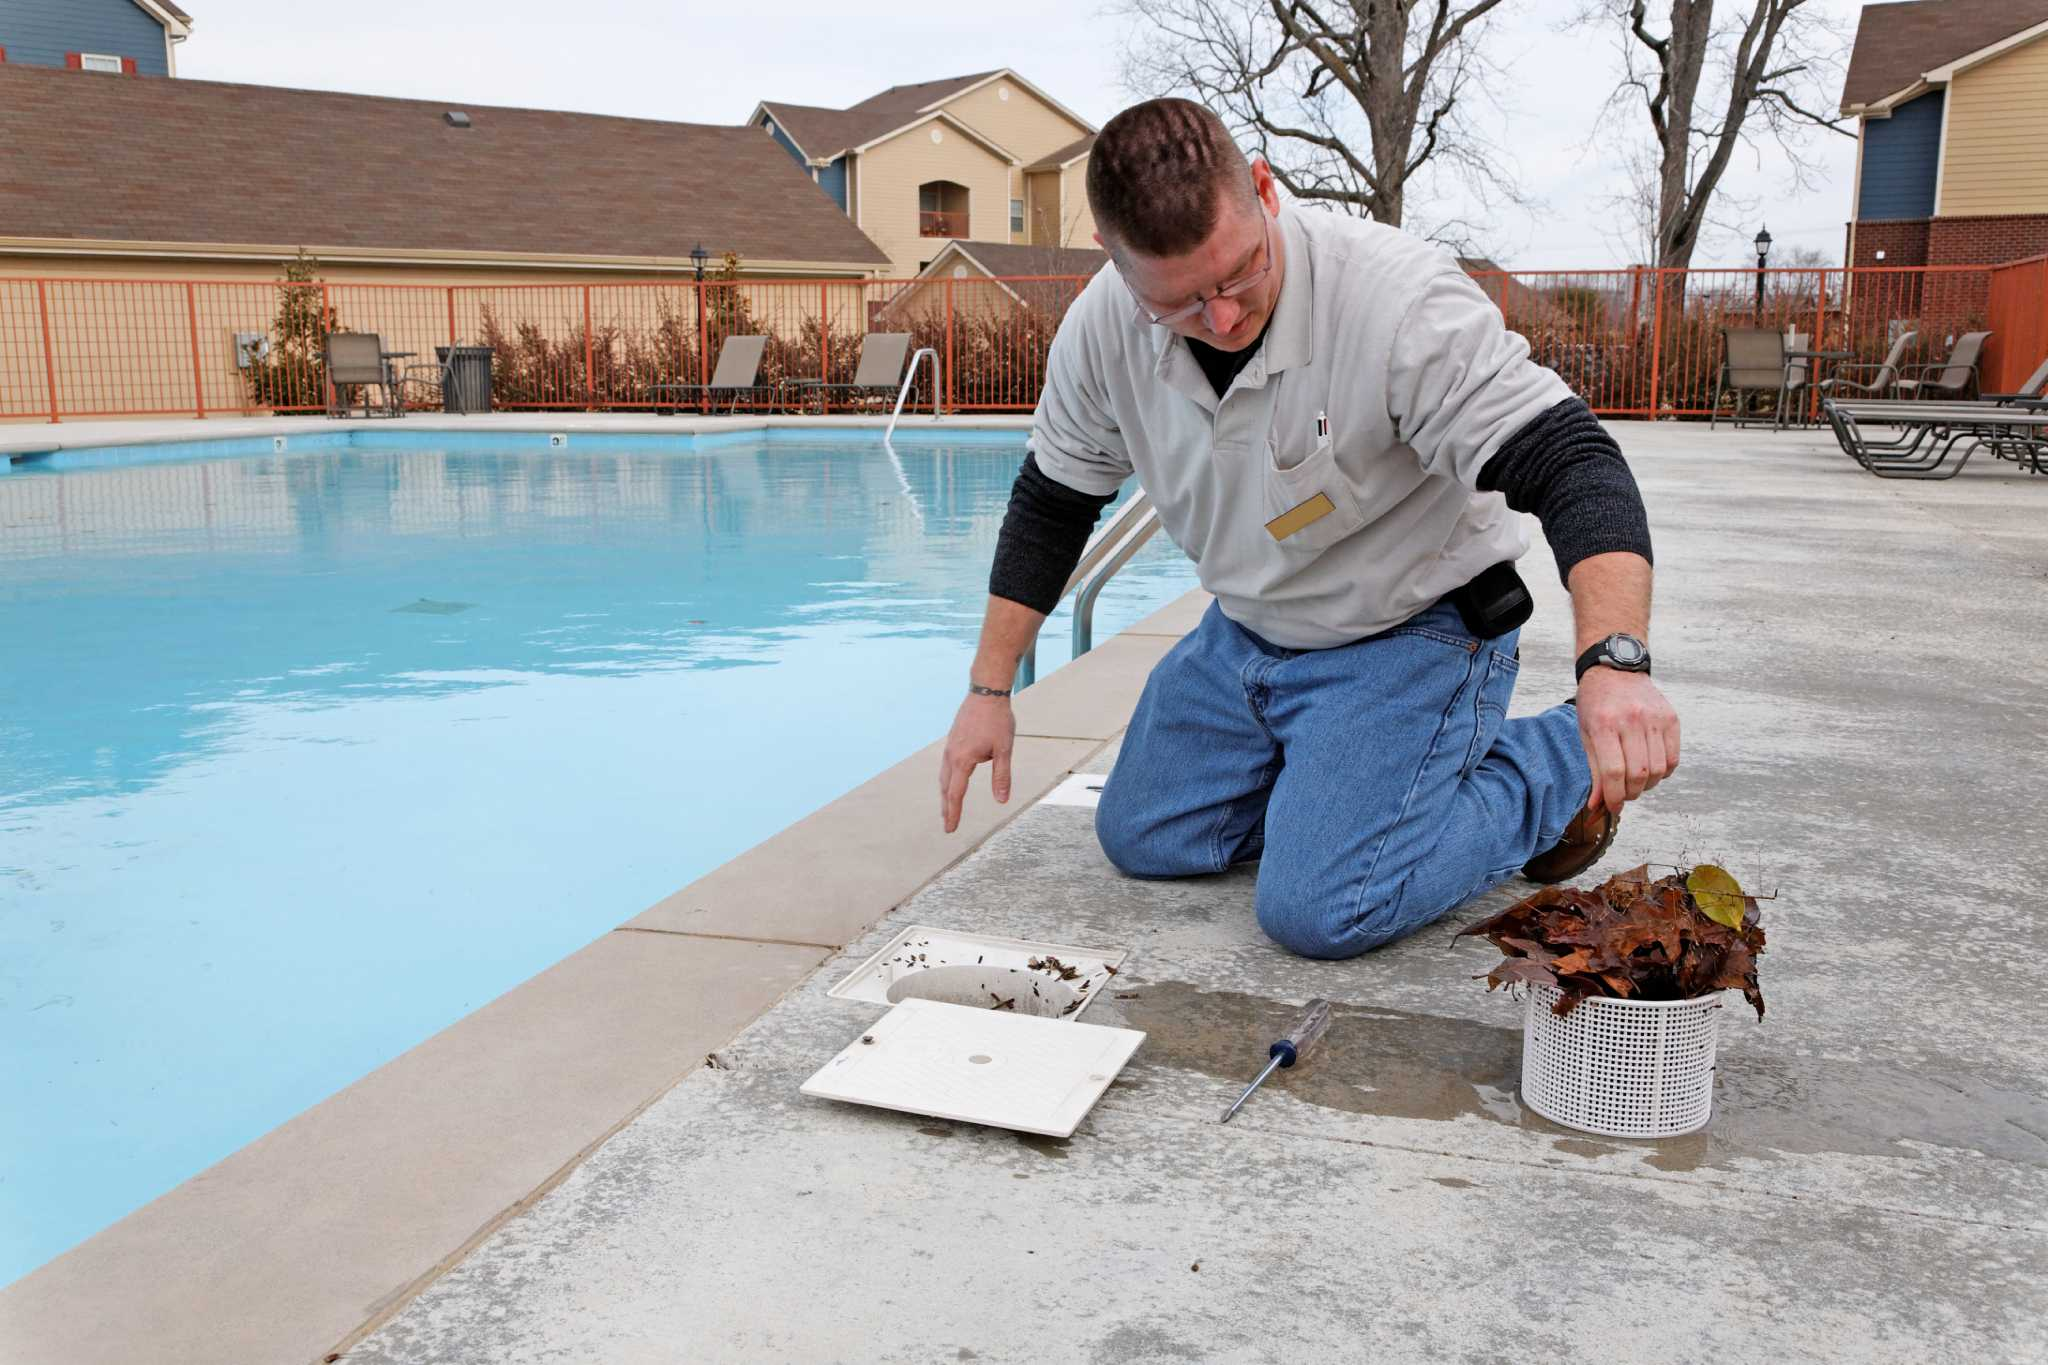 Swimming Pool Care Repair Offer Wave Of Job Potential Houston Chronicle